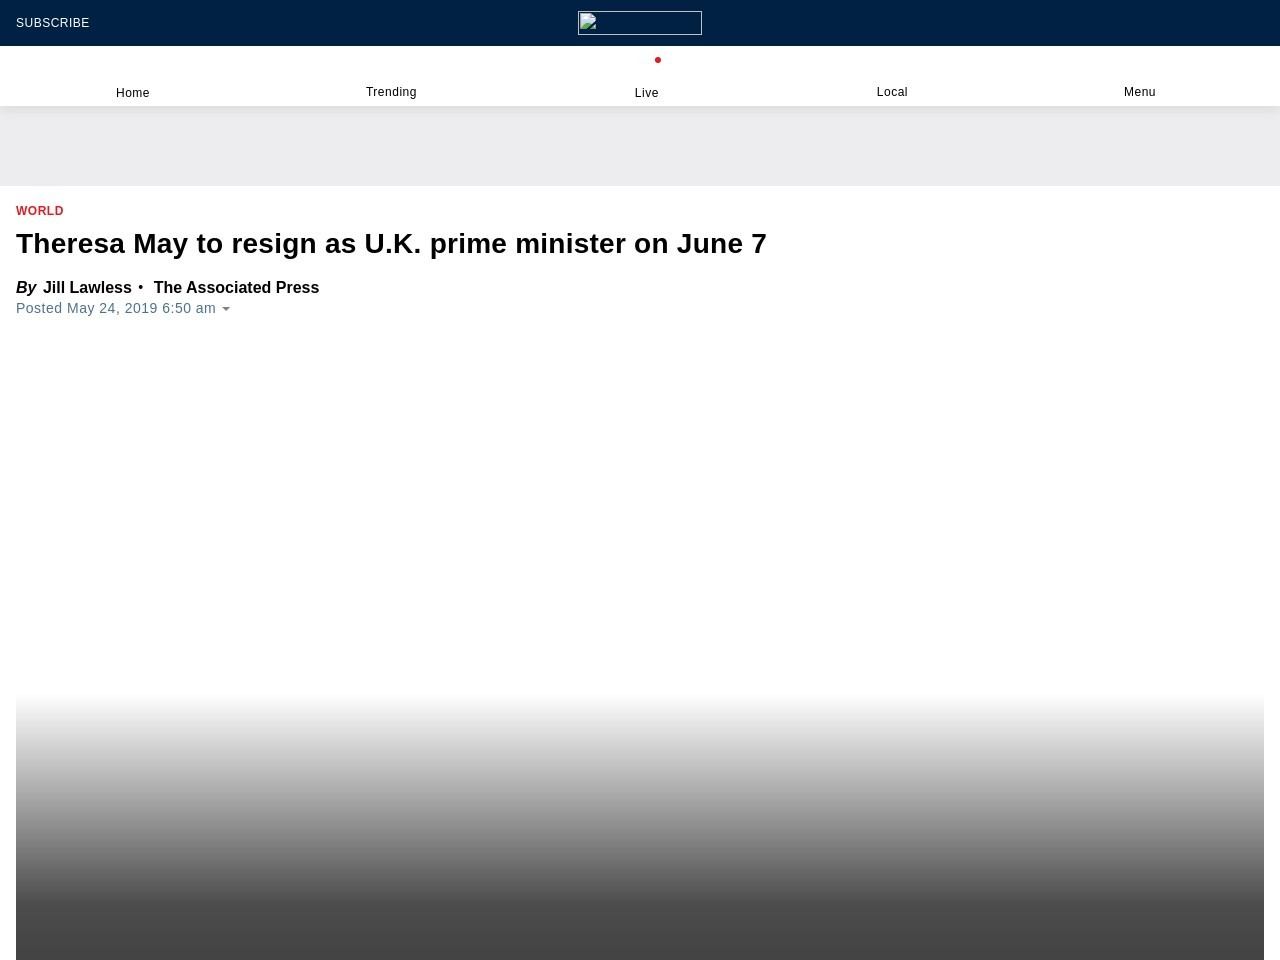 Theresa May to resign as U.K. prime minister on June 7